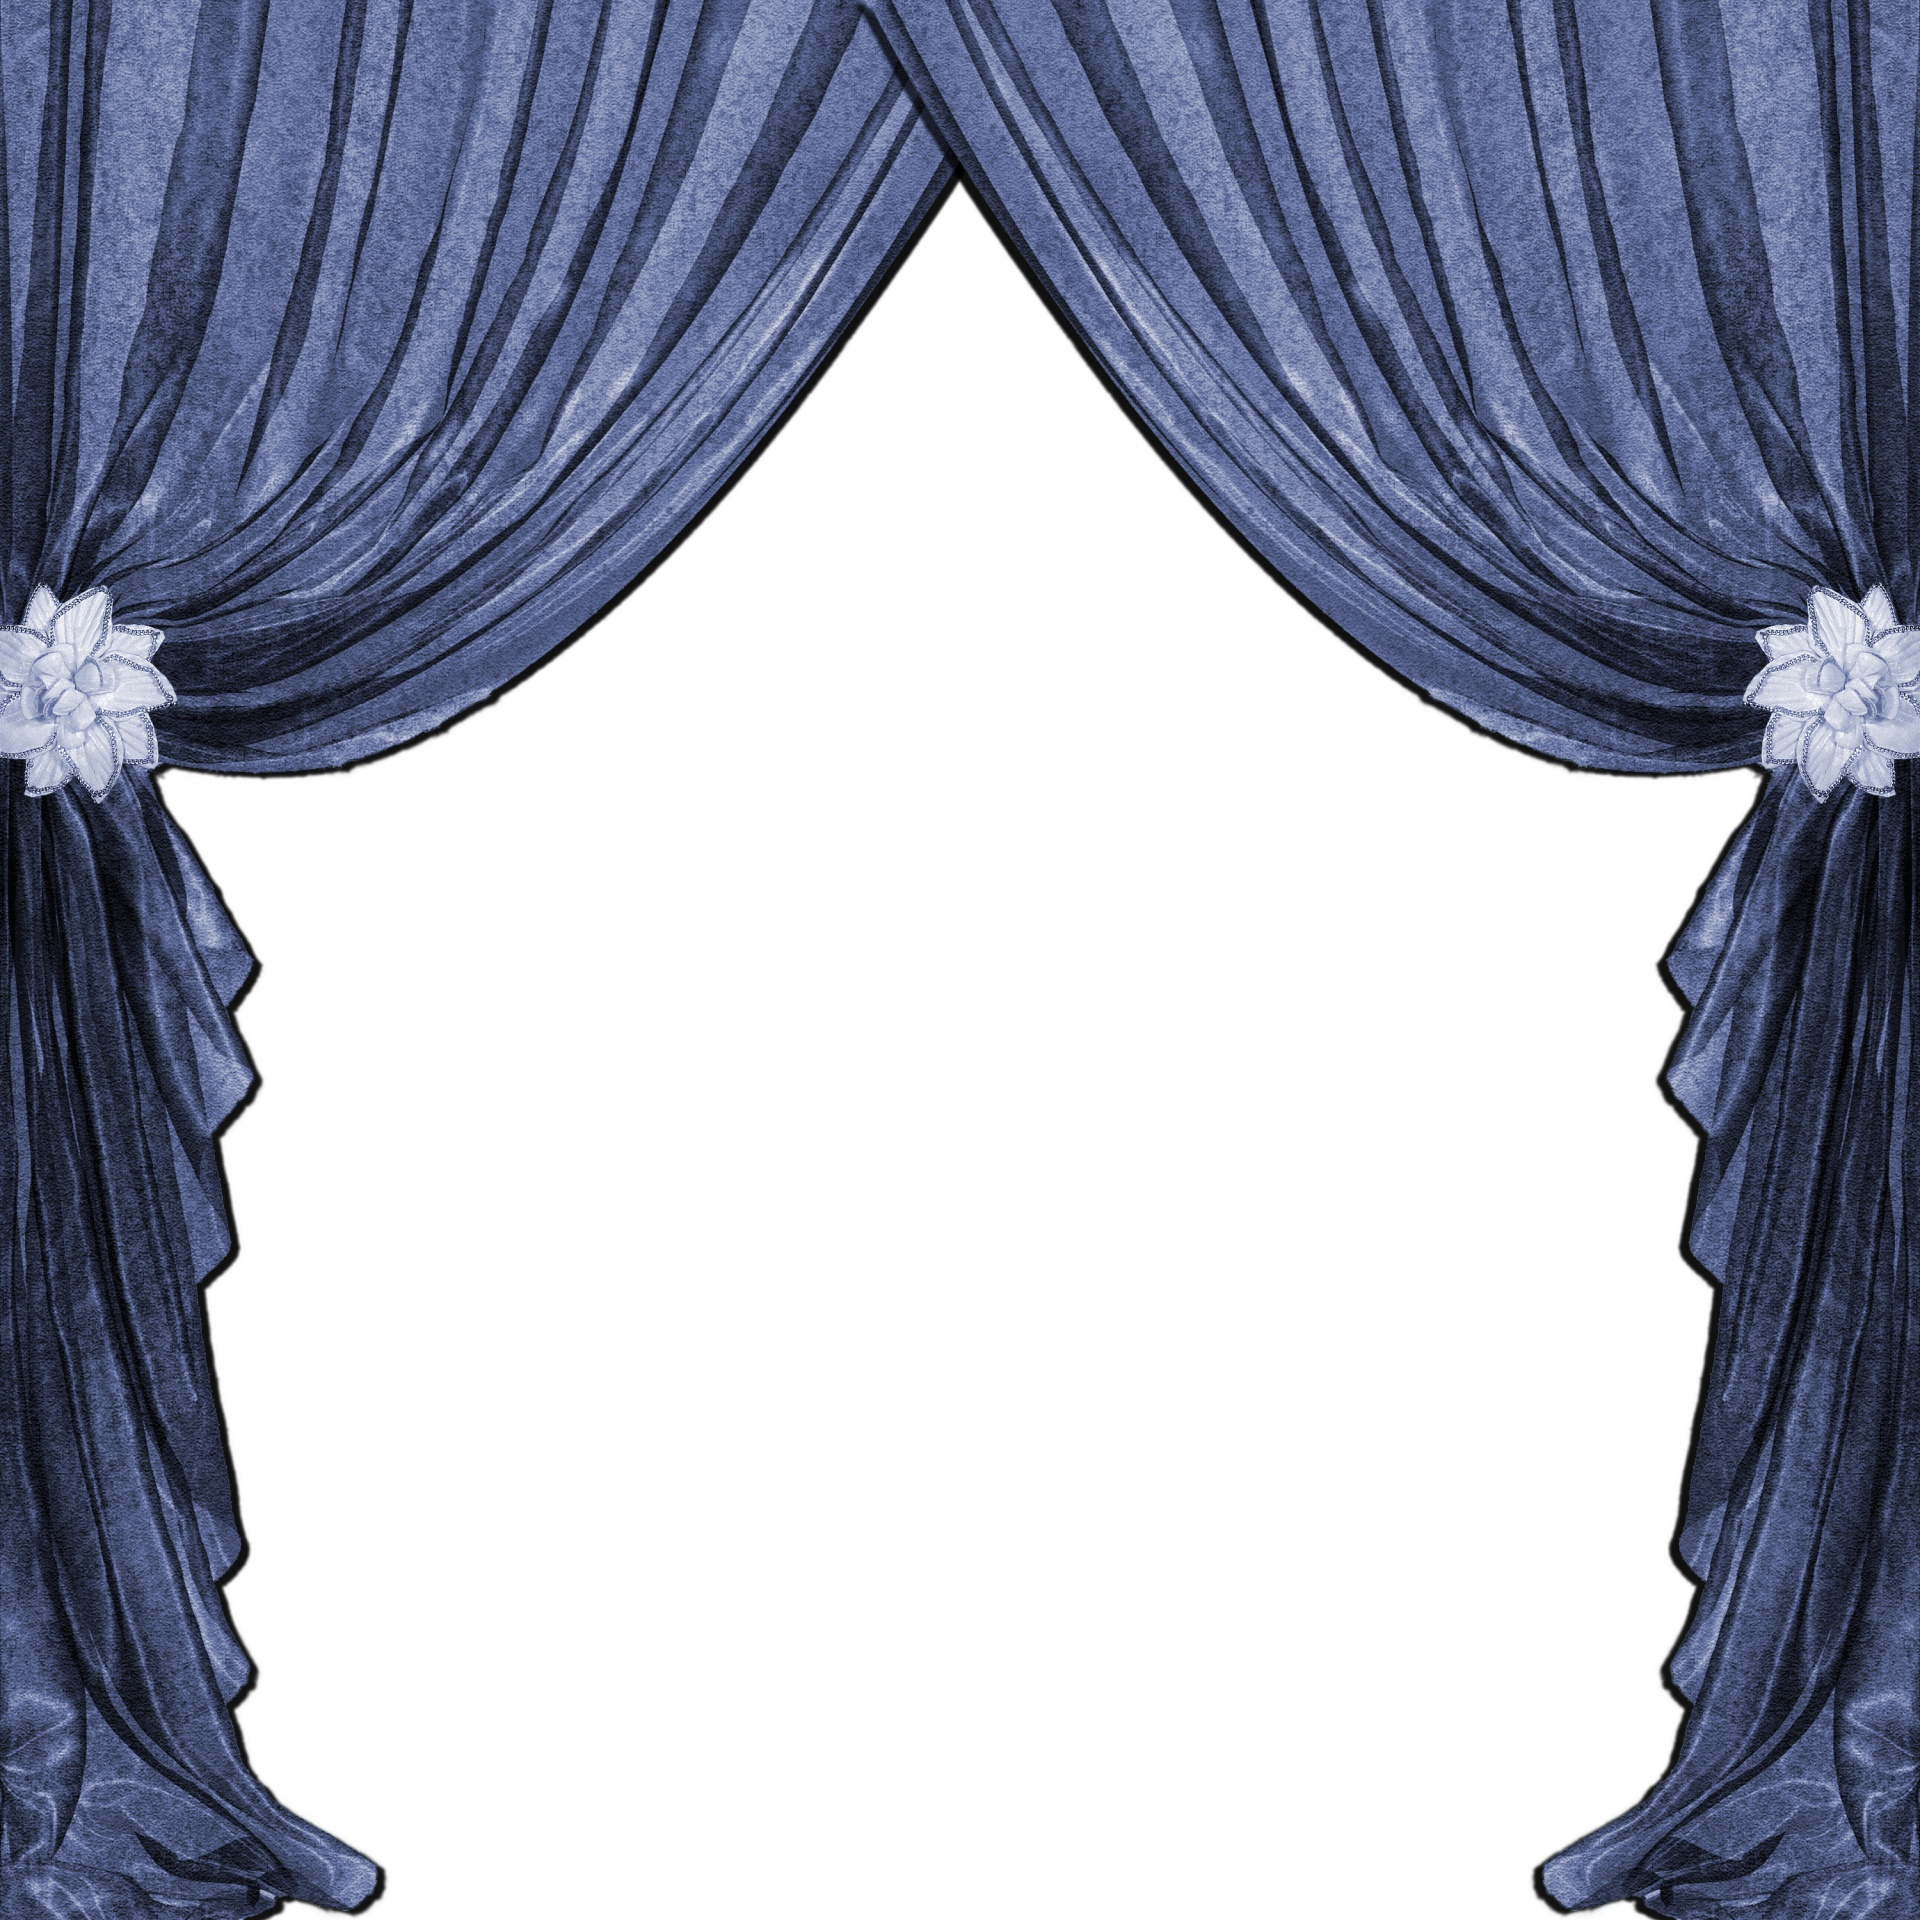 Curtain clipart blue curtain. Drapes curtains free stock